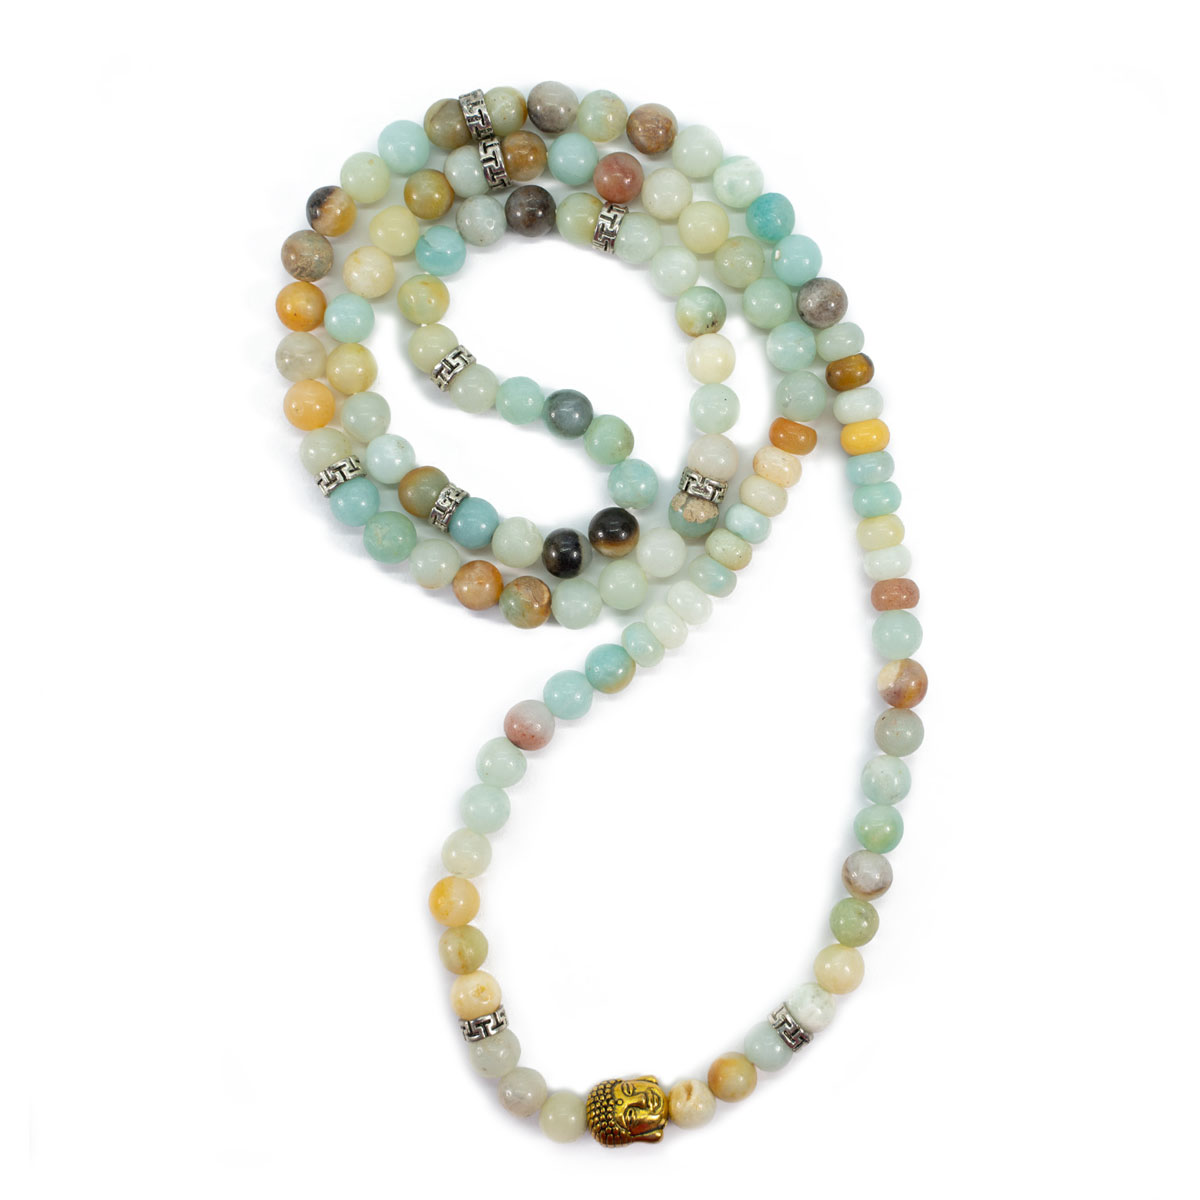 Sri Avinash Blessed™ Amazonite & Buddha Mala Necklace